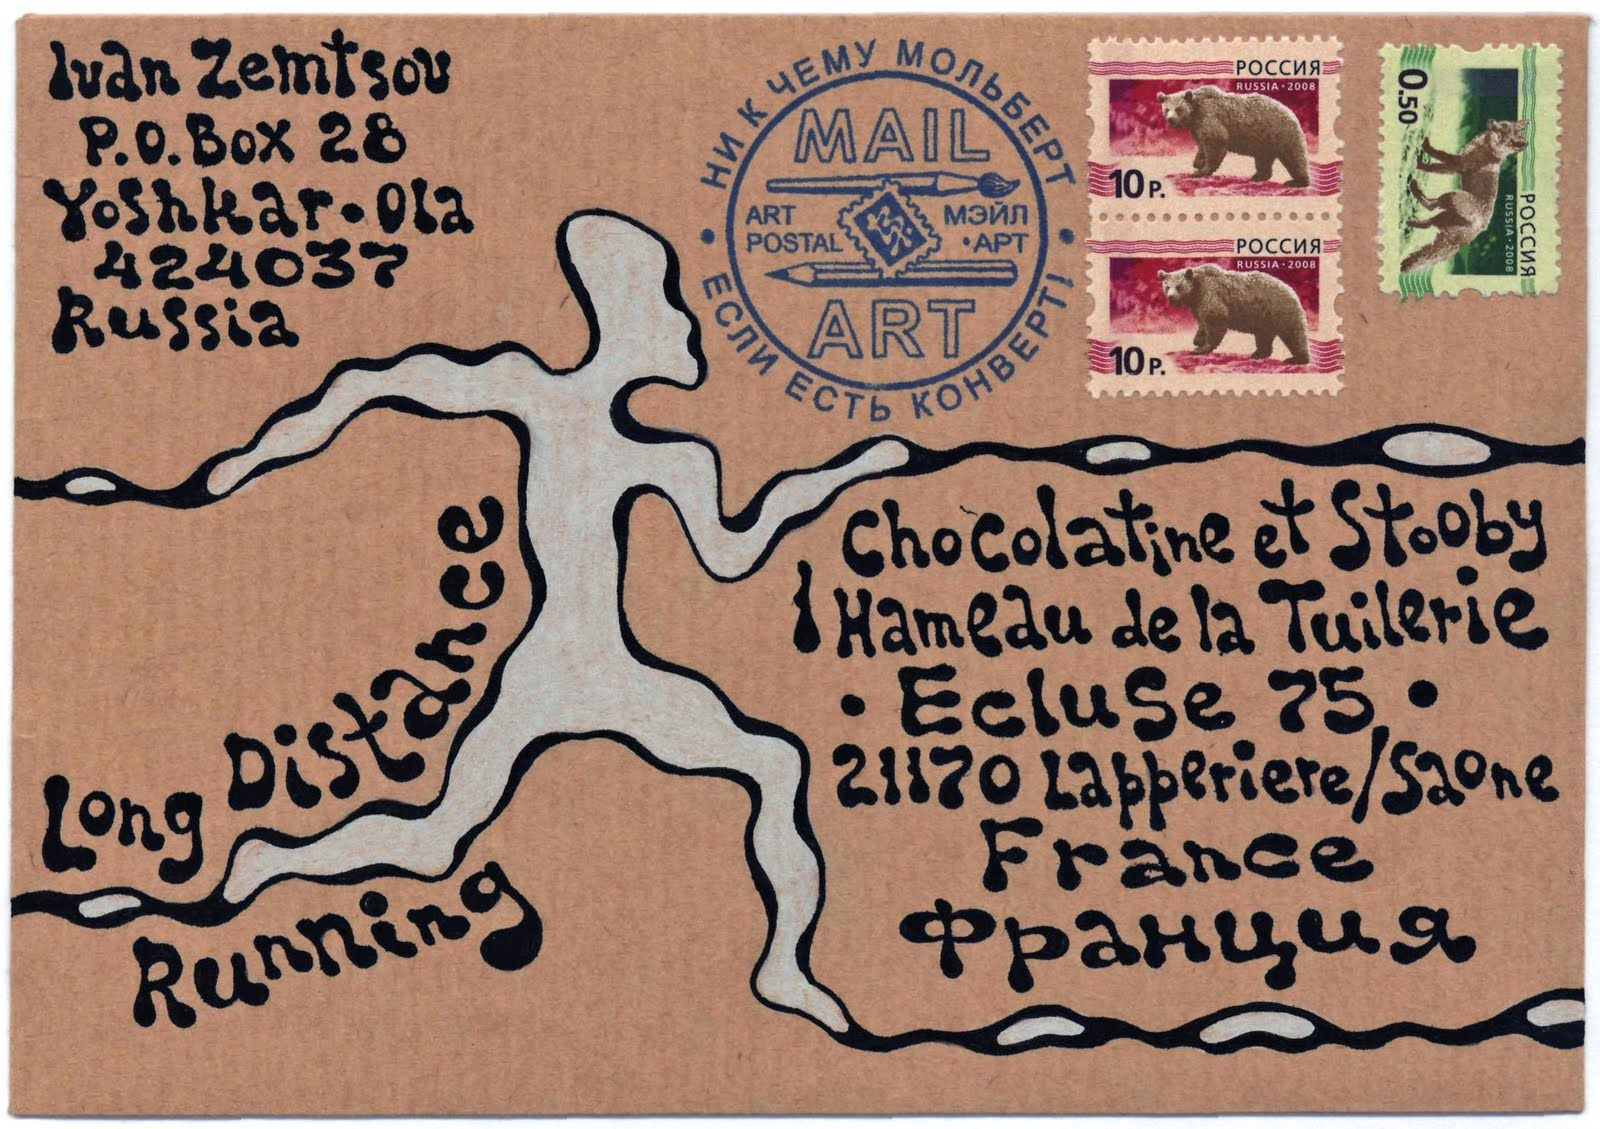 Long Distance Running Mail Art Project: January 2011